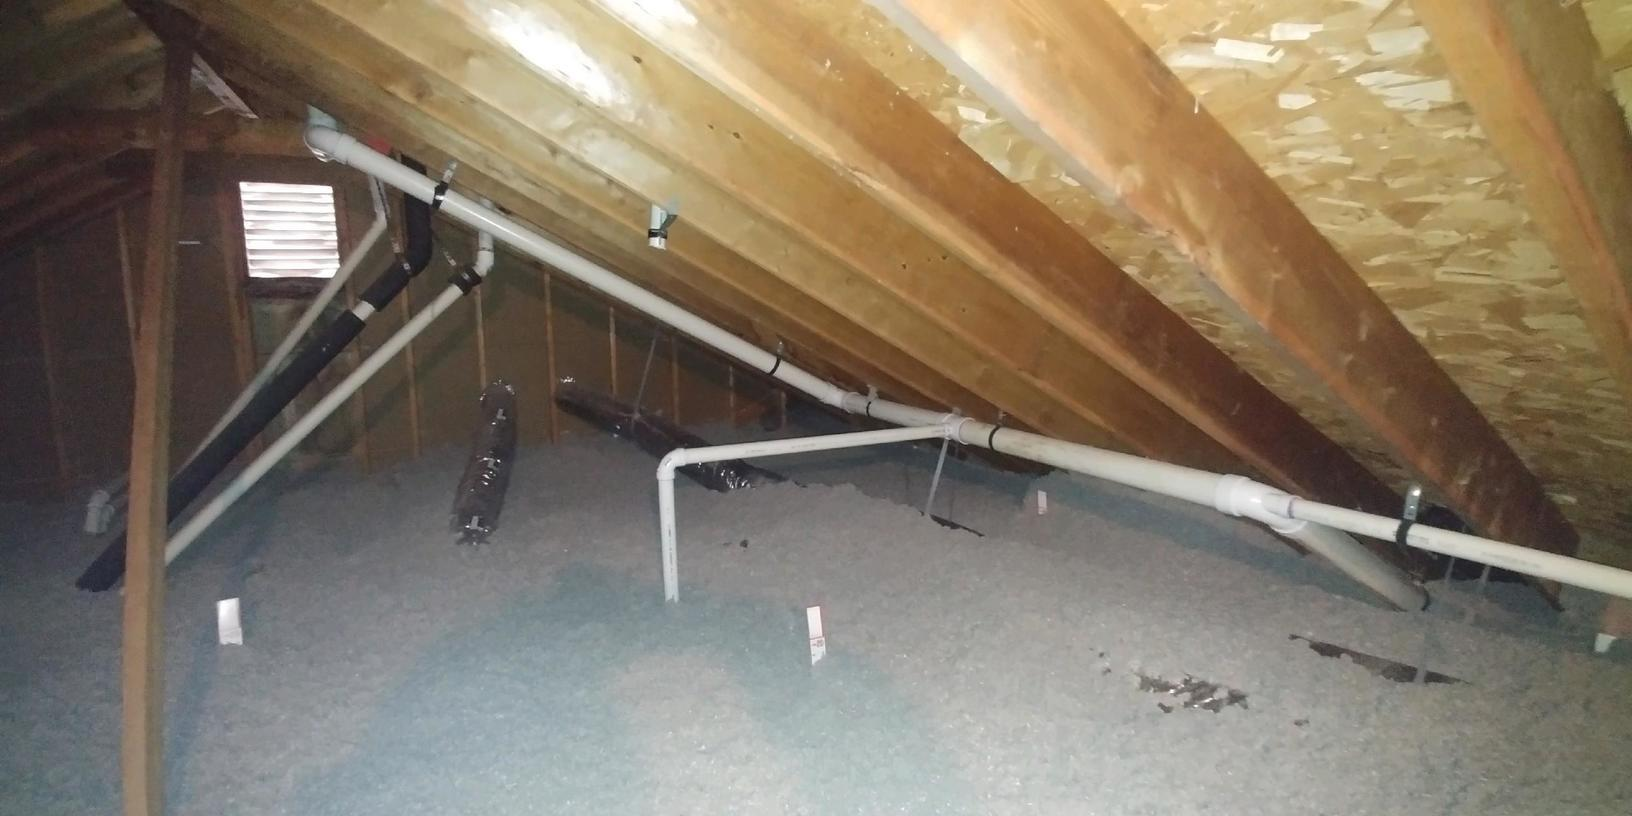 Blown in Cellulose Insulation in an Attic in Cherry Hill, NJ - After Photo